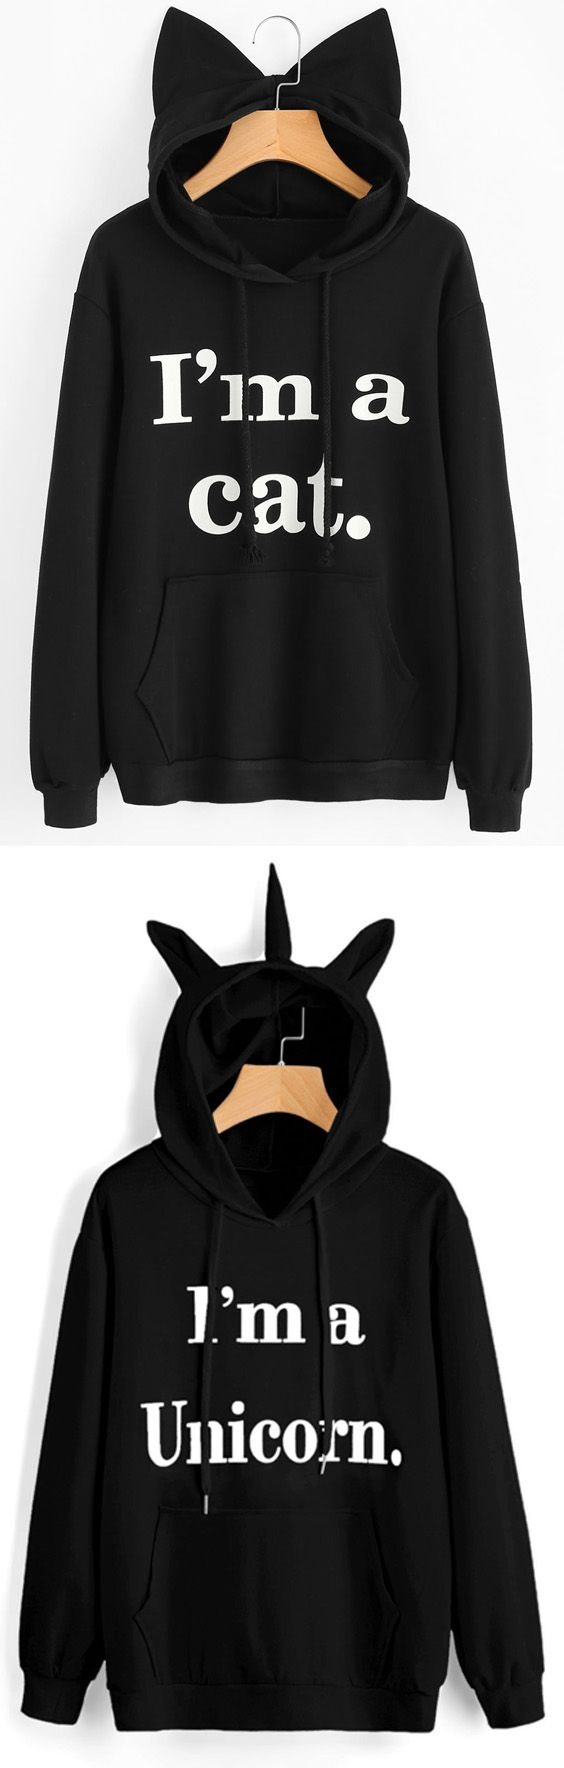 Up to 68% OFF! Front Pocket Letter Graphic Cat Hoodie. #Zaful #fashion #style #tops #outfits #blouses #womens tops #sweatshirts #hoodies #hoodiesoutfit #sweatshirtsoutfit #sweatshirtsforwomen #women'shoodies #womenssweatshirts #cutesweatshirts #floralhoodie #croppedhoodies #oversizedsweatshirt #winteroutfits #winterfashion #fallfashion #falloutfits #halloweencostumes #halloween #halloweenoutfits #christmas #thanksgiving #gift @zaful Extra 10% OFF Code:ZF2017